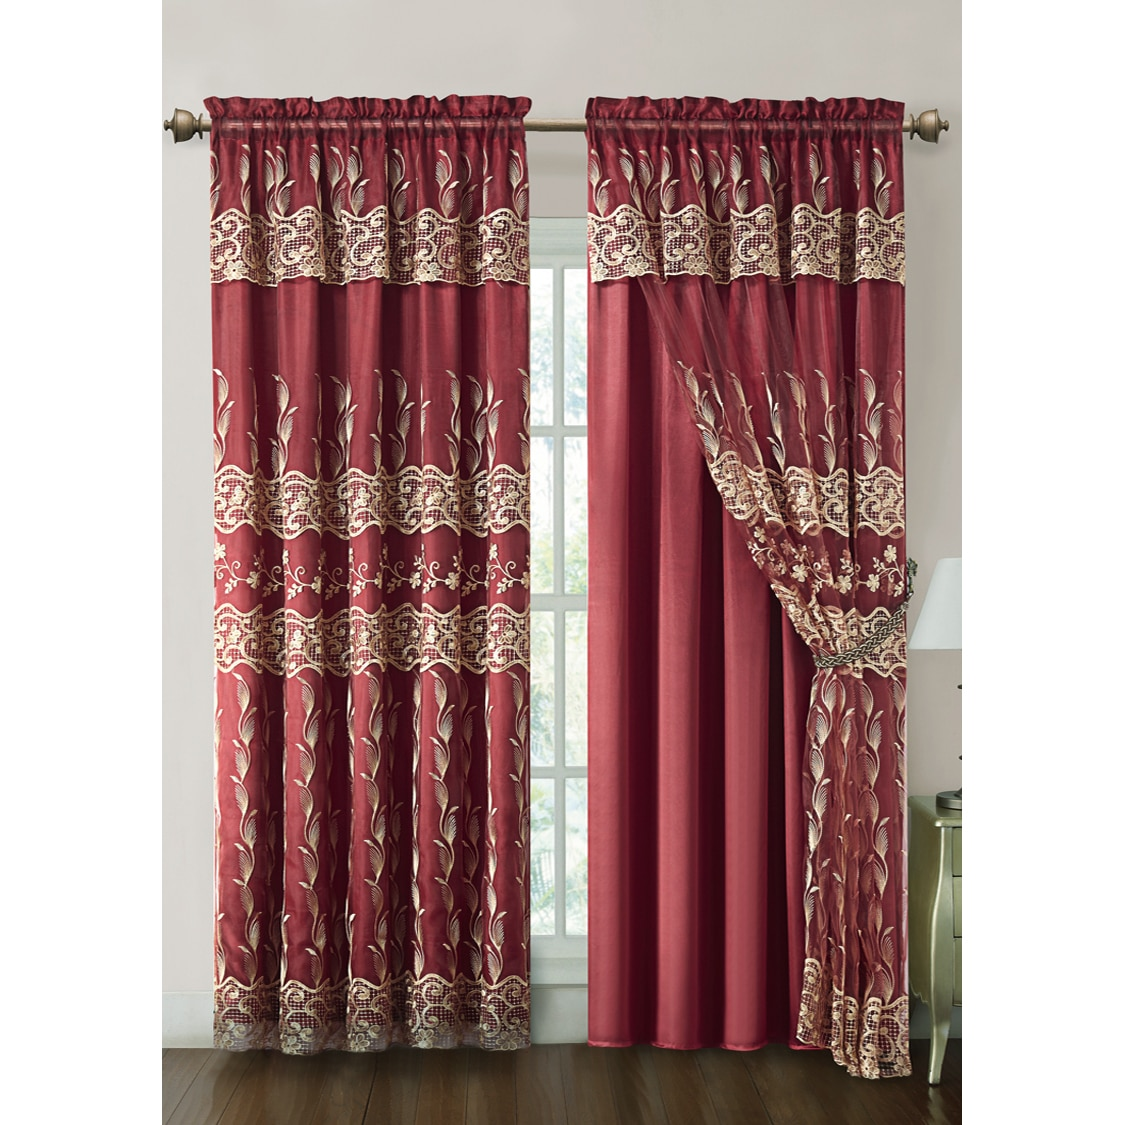 tremendous curtain penneys size amazing commendable furniture burgundy with kitchen refreshin stunning valance ideas ashley curtains avery of waverly inch frightening laura full lace window lovable windows treatments design valances va for